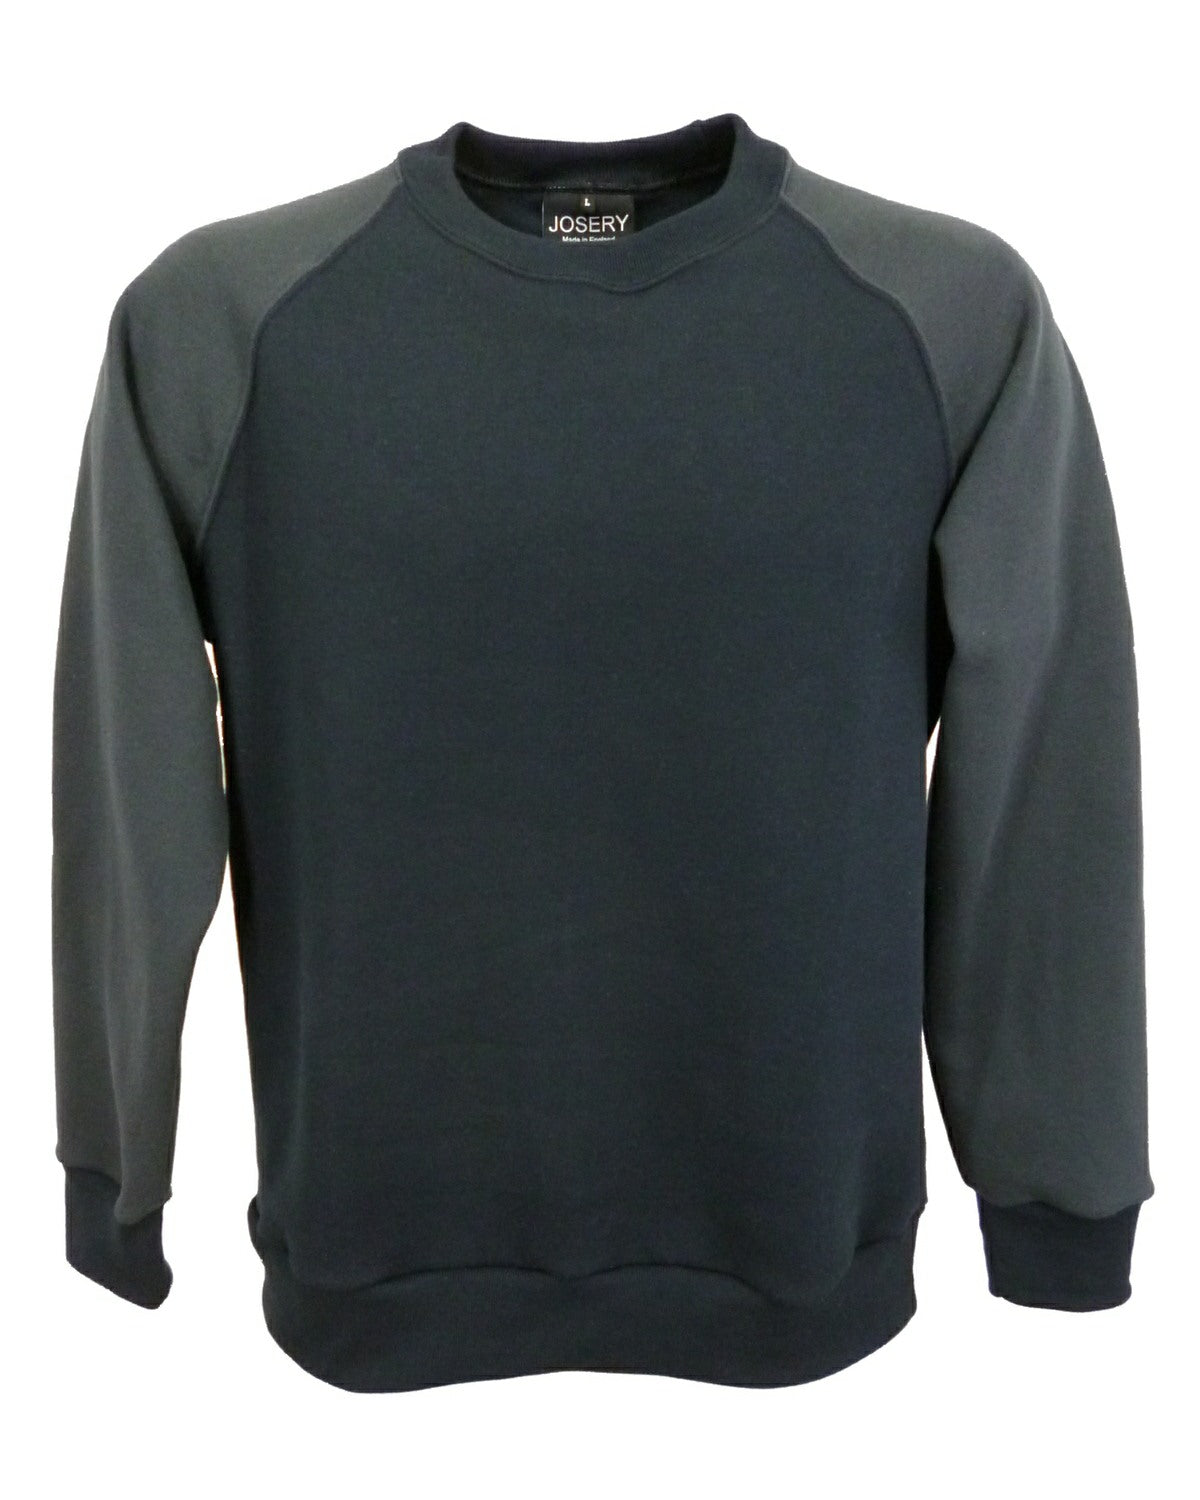 Black and dark grey contrast sleeve raglan sweatshirt.